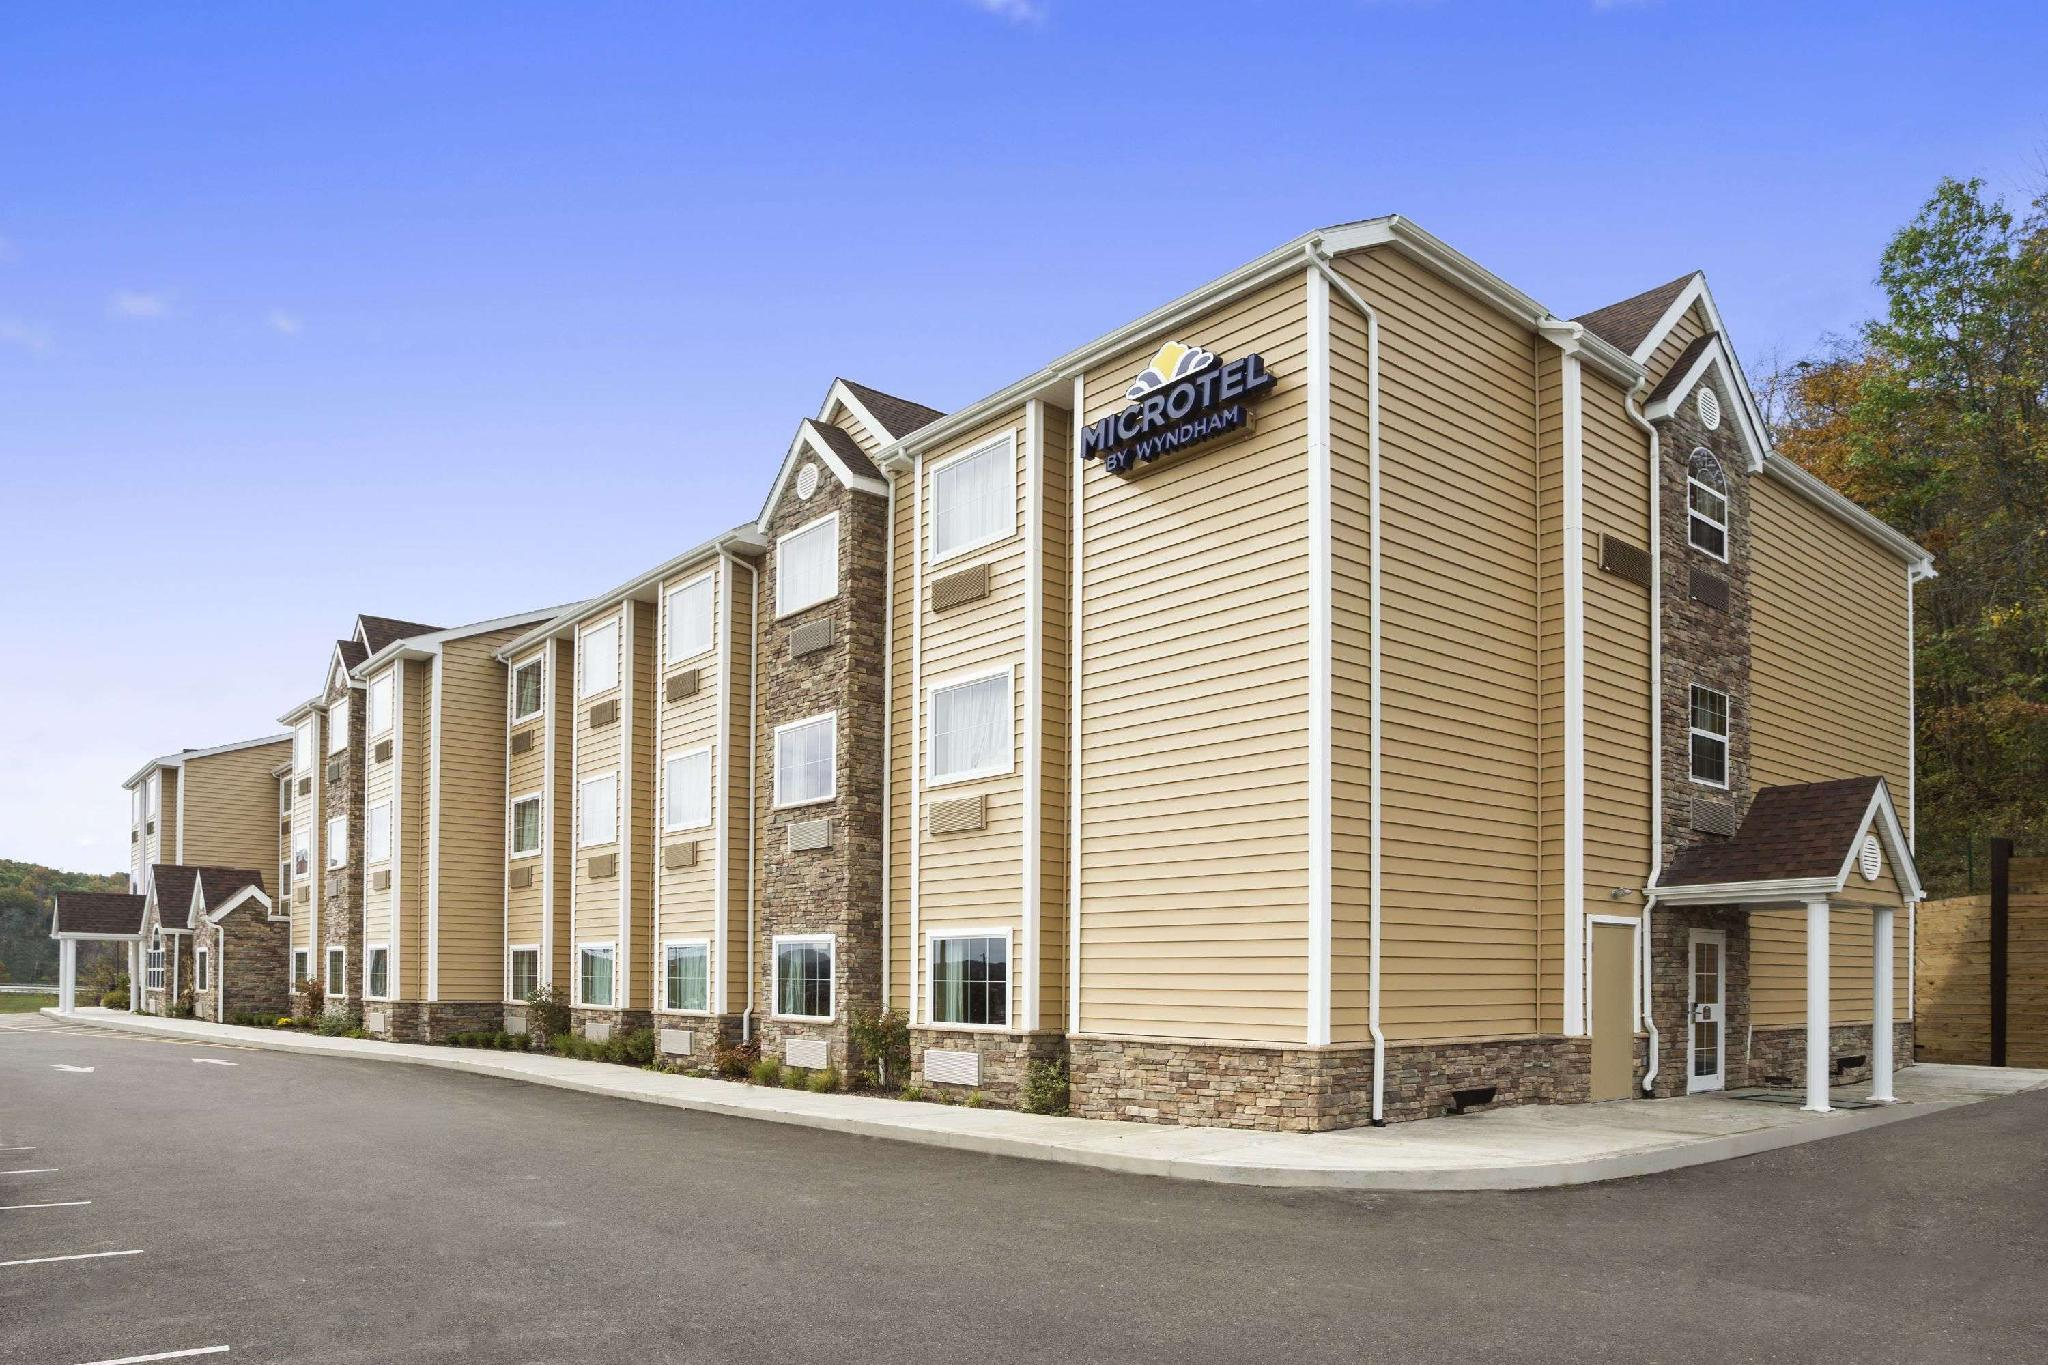 Microtel Inn And Suites By Wyndham Cambridge